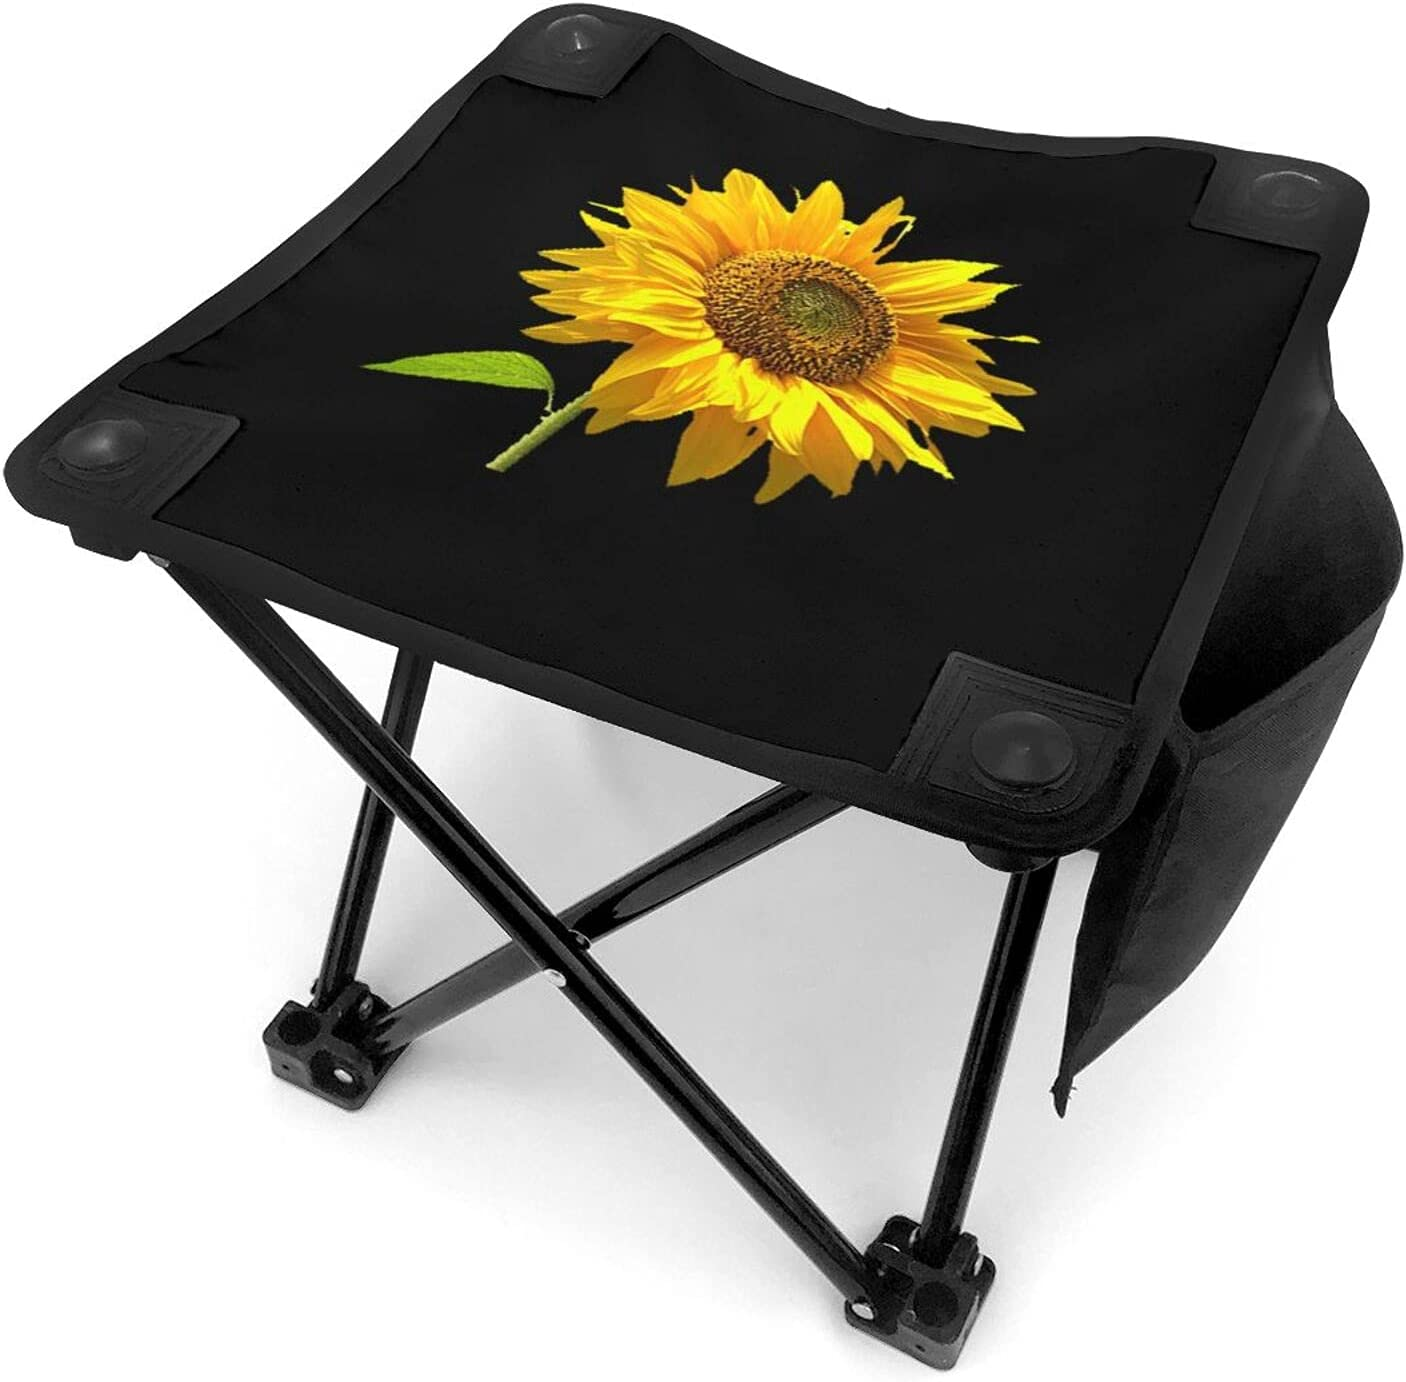 SEAL limited product Sunflower Inspirational Camping Stool Portable Fishin High order Ultralight